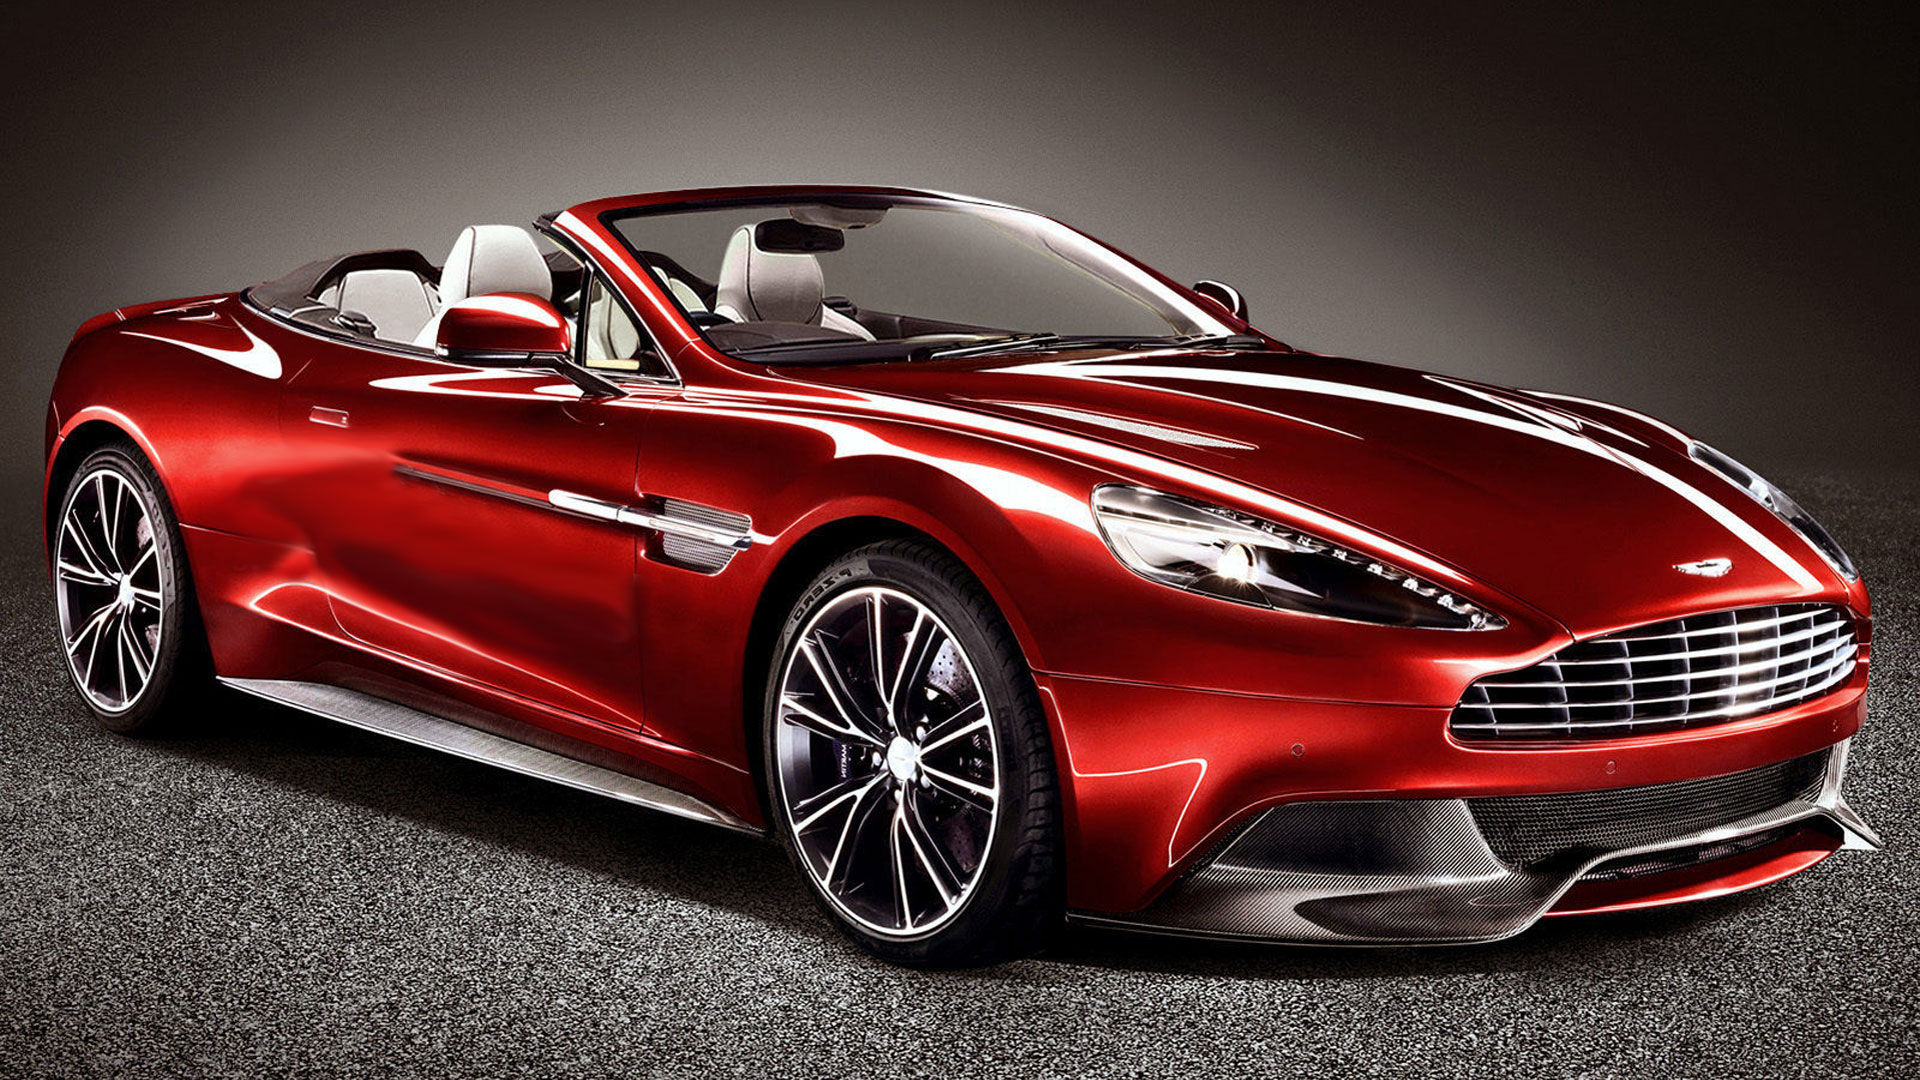 Aston-Martin-Vanquish-Volante-1920-1080-Hd-Desktop-HD-Stock-photos-HD-qu-wallpaper-wp3801049